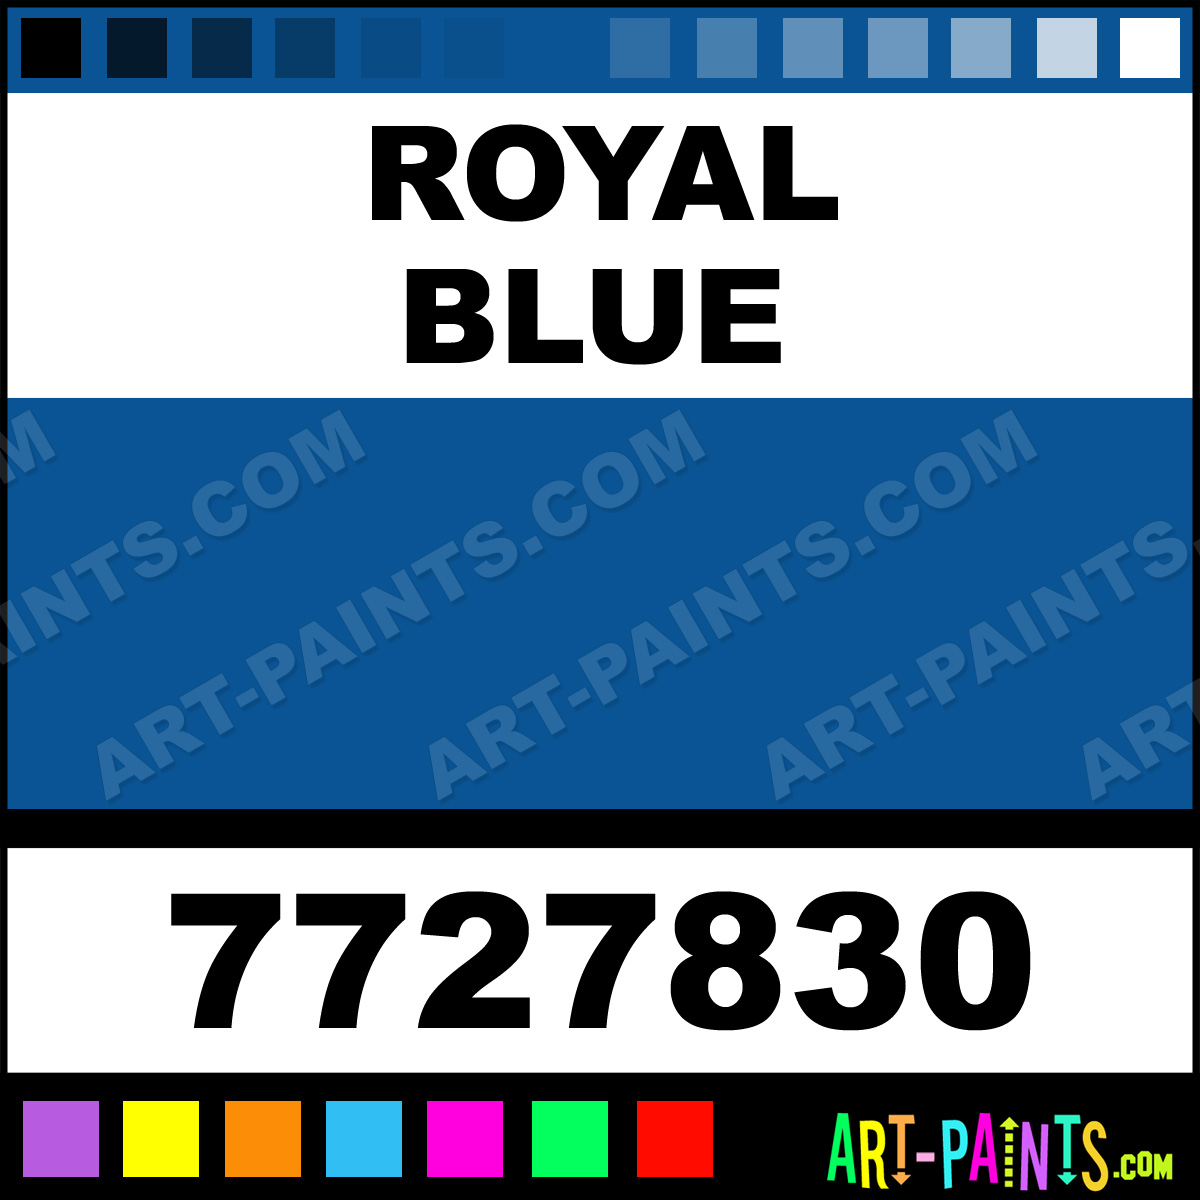 Royal Blue Gloss Protective Enamel Paints 7727830